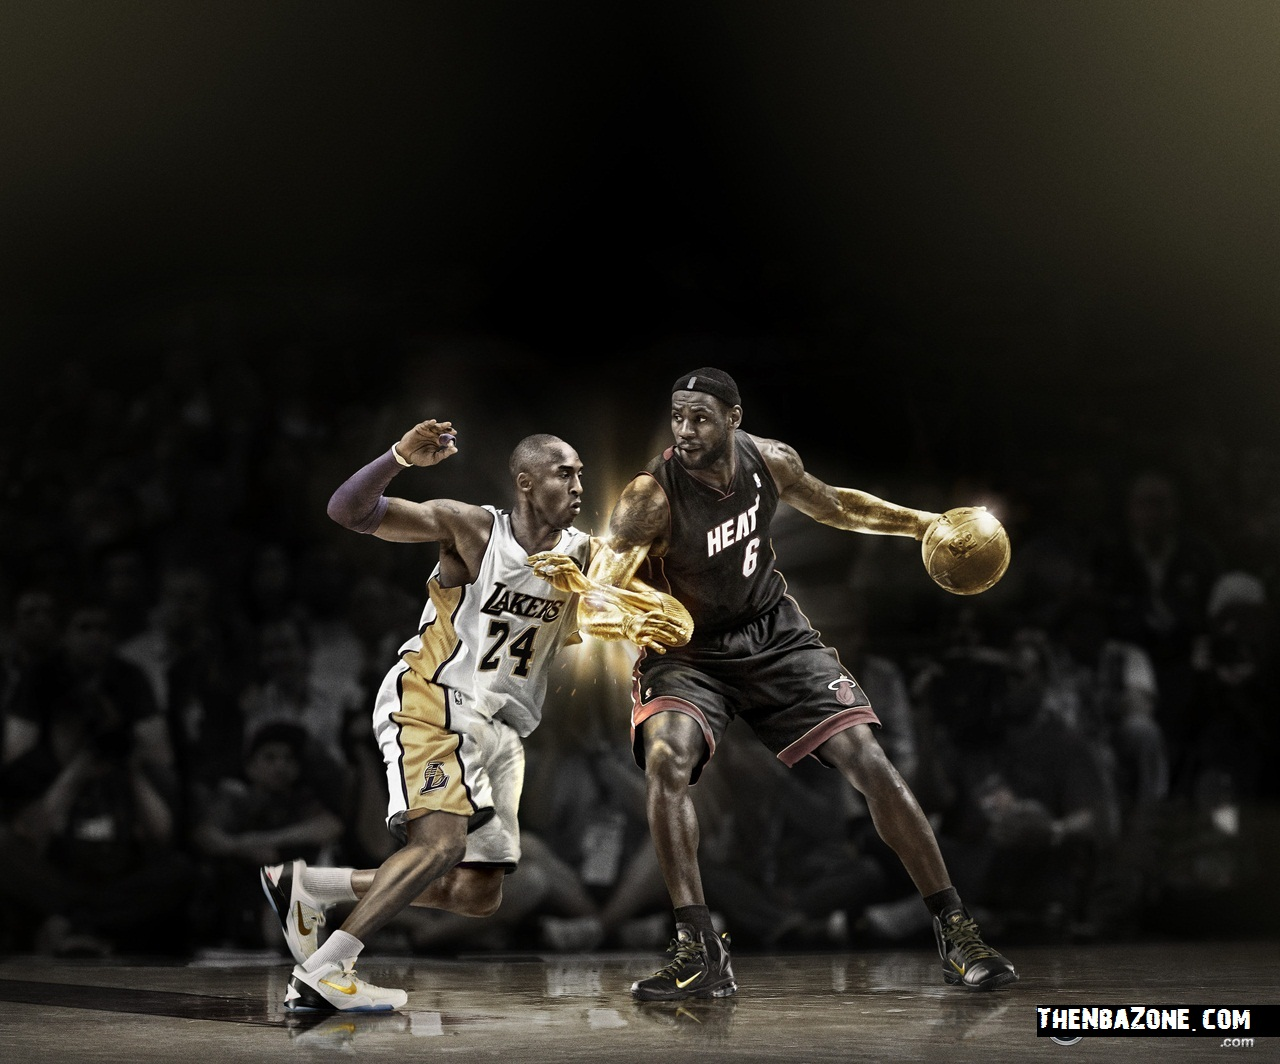 http://3.bp.blogspot.com/-zxGxeXRyiWI/T6pNe6d4ROI/AAAAAAAAAuU/Y-4AdlMzUOQ/s1600/LeBron_James_vs_Kobe_Bryant_NBA_Playoffs_2012_Wallpaper.jpg